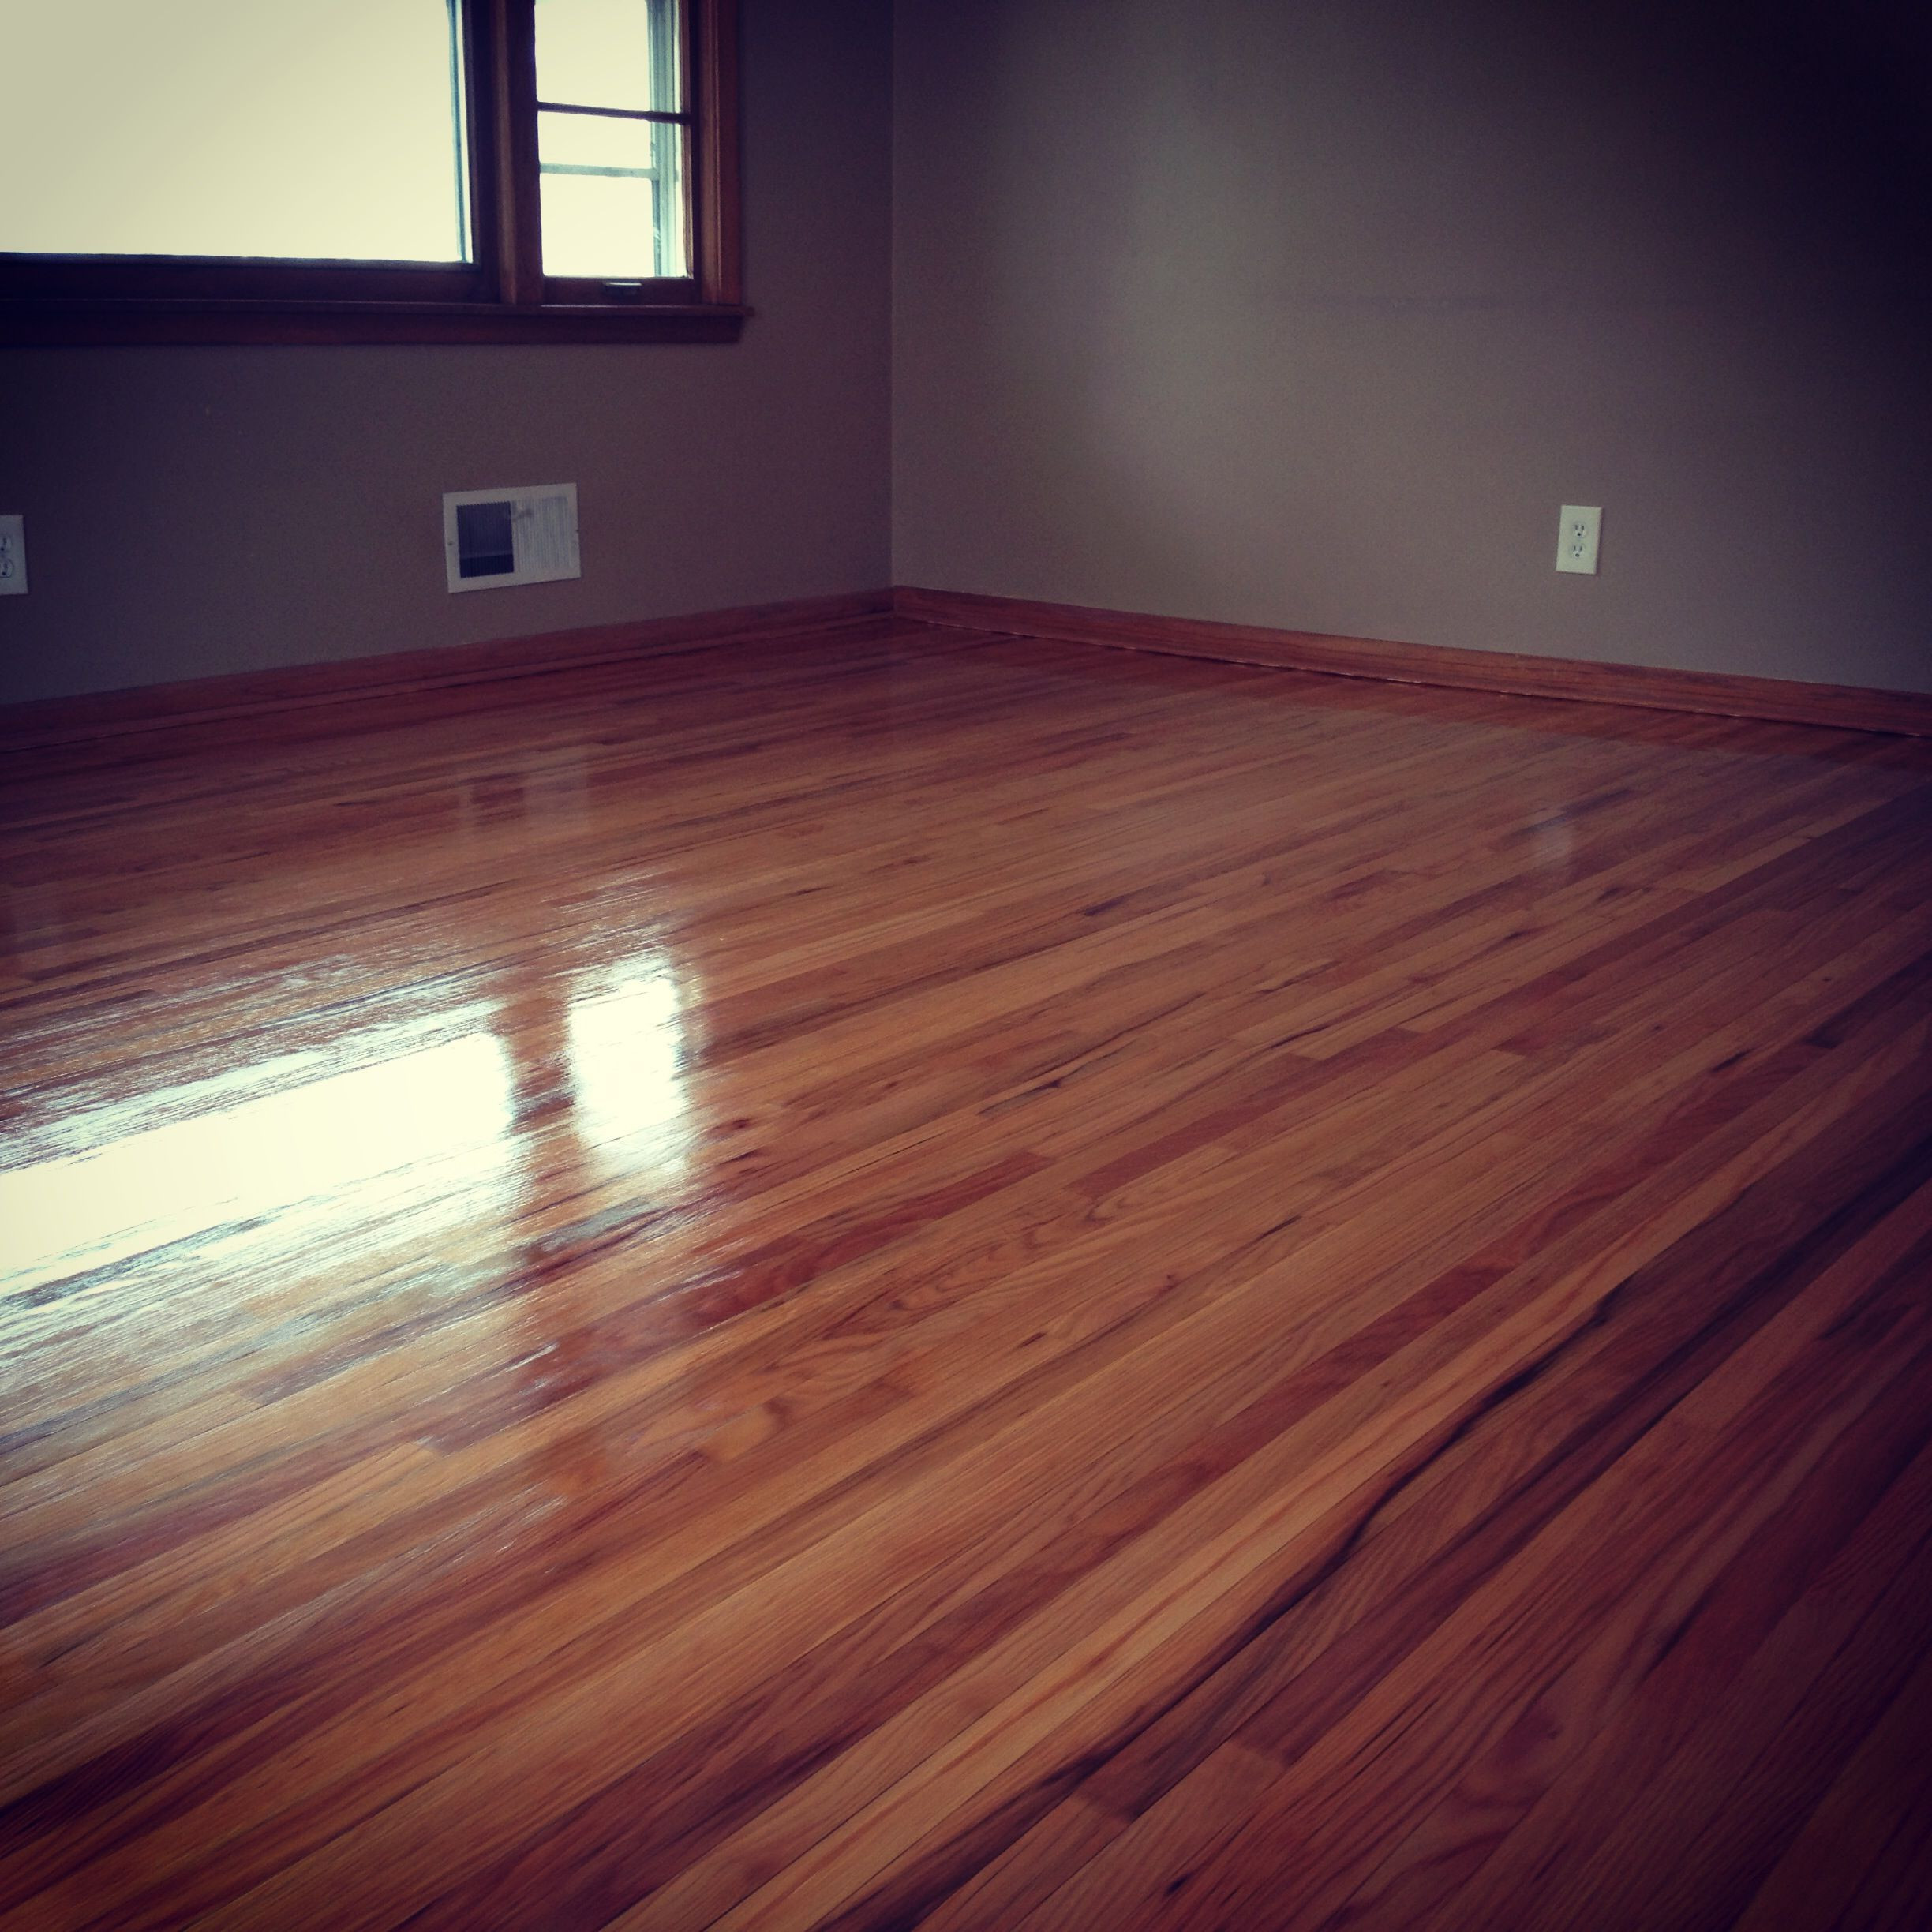 1.5 oak hardwood flooring of red oak hardwood floor refinished by arnes floor sanding http www in red oak hardwood floor refinished by arnes floor sanding http www arnesfloorsanding